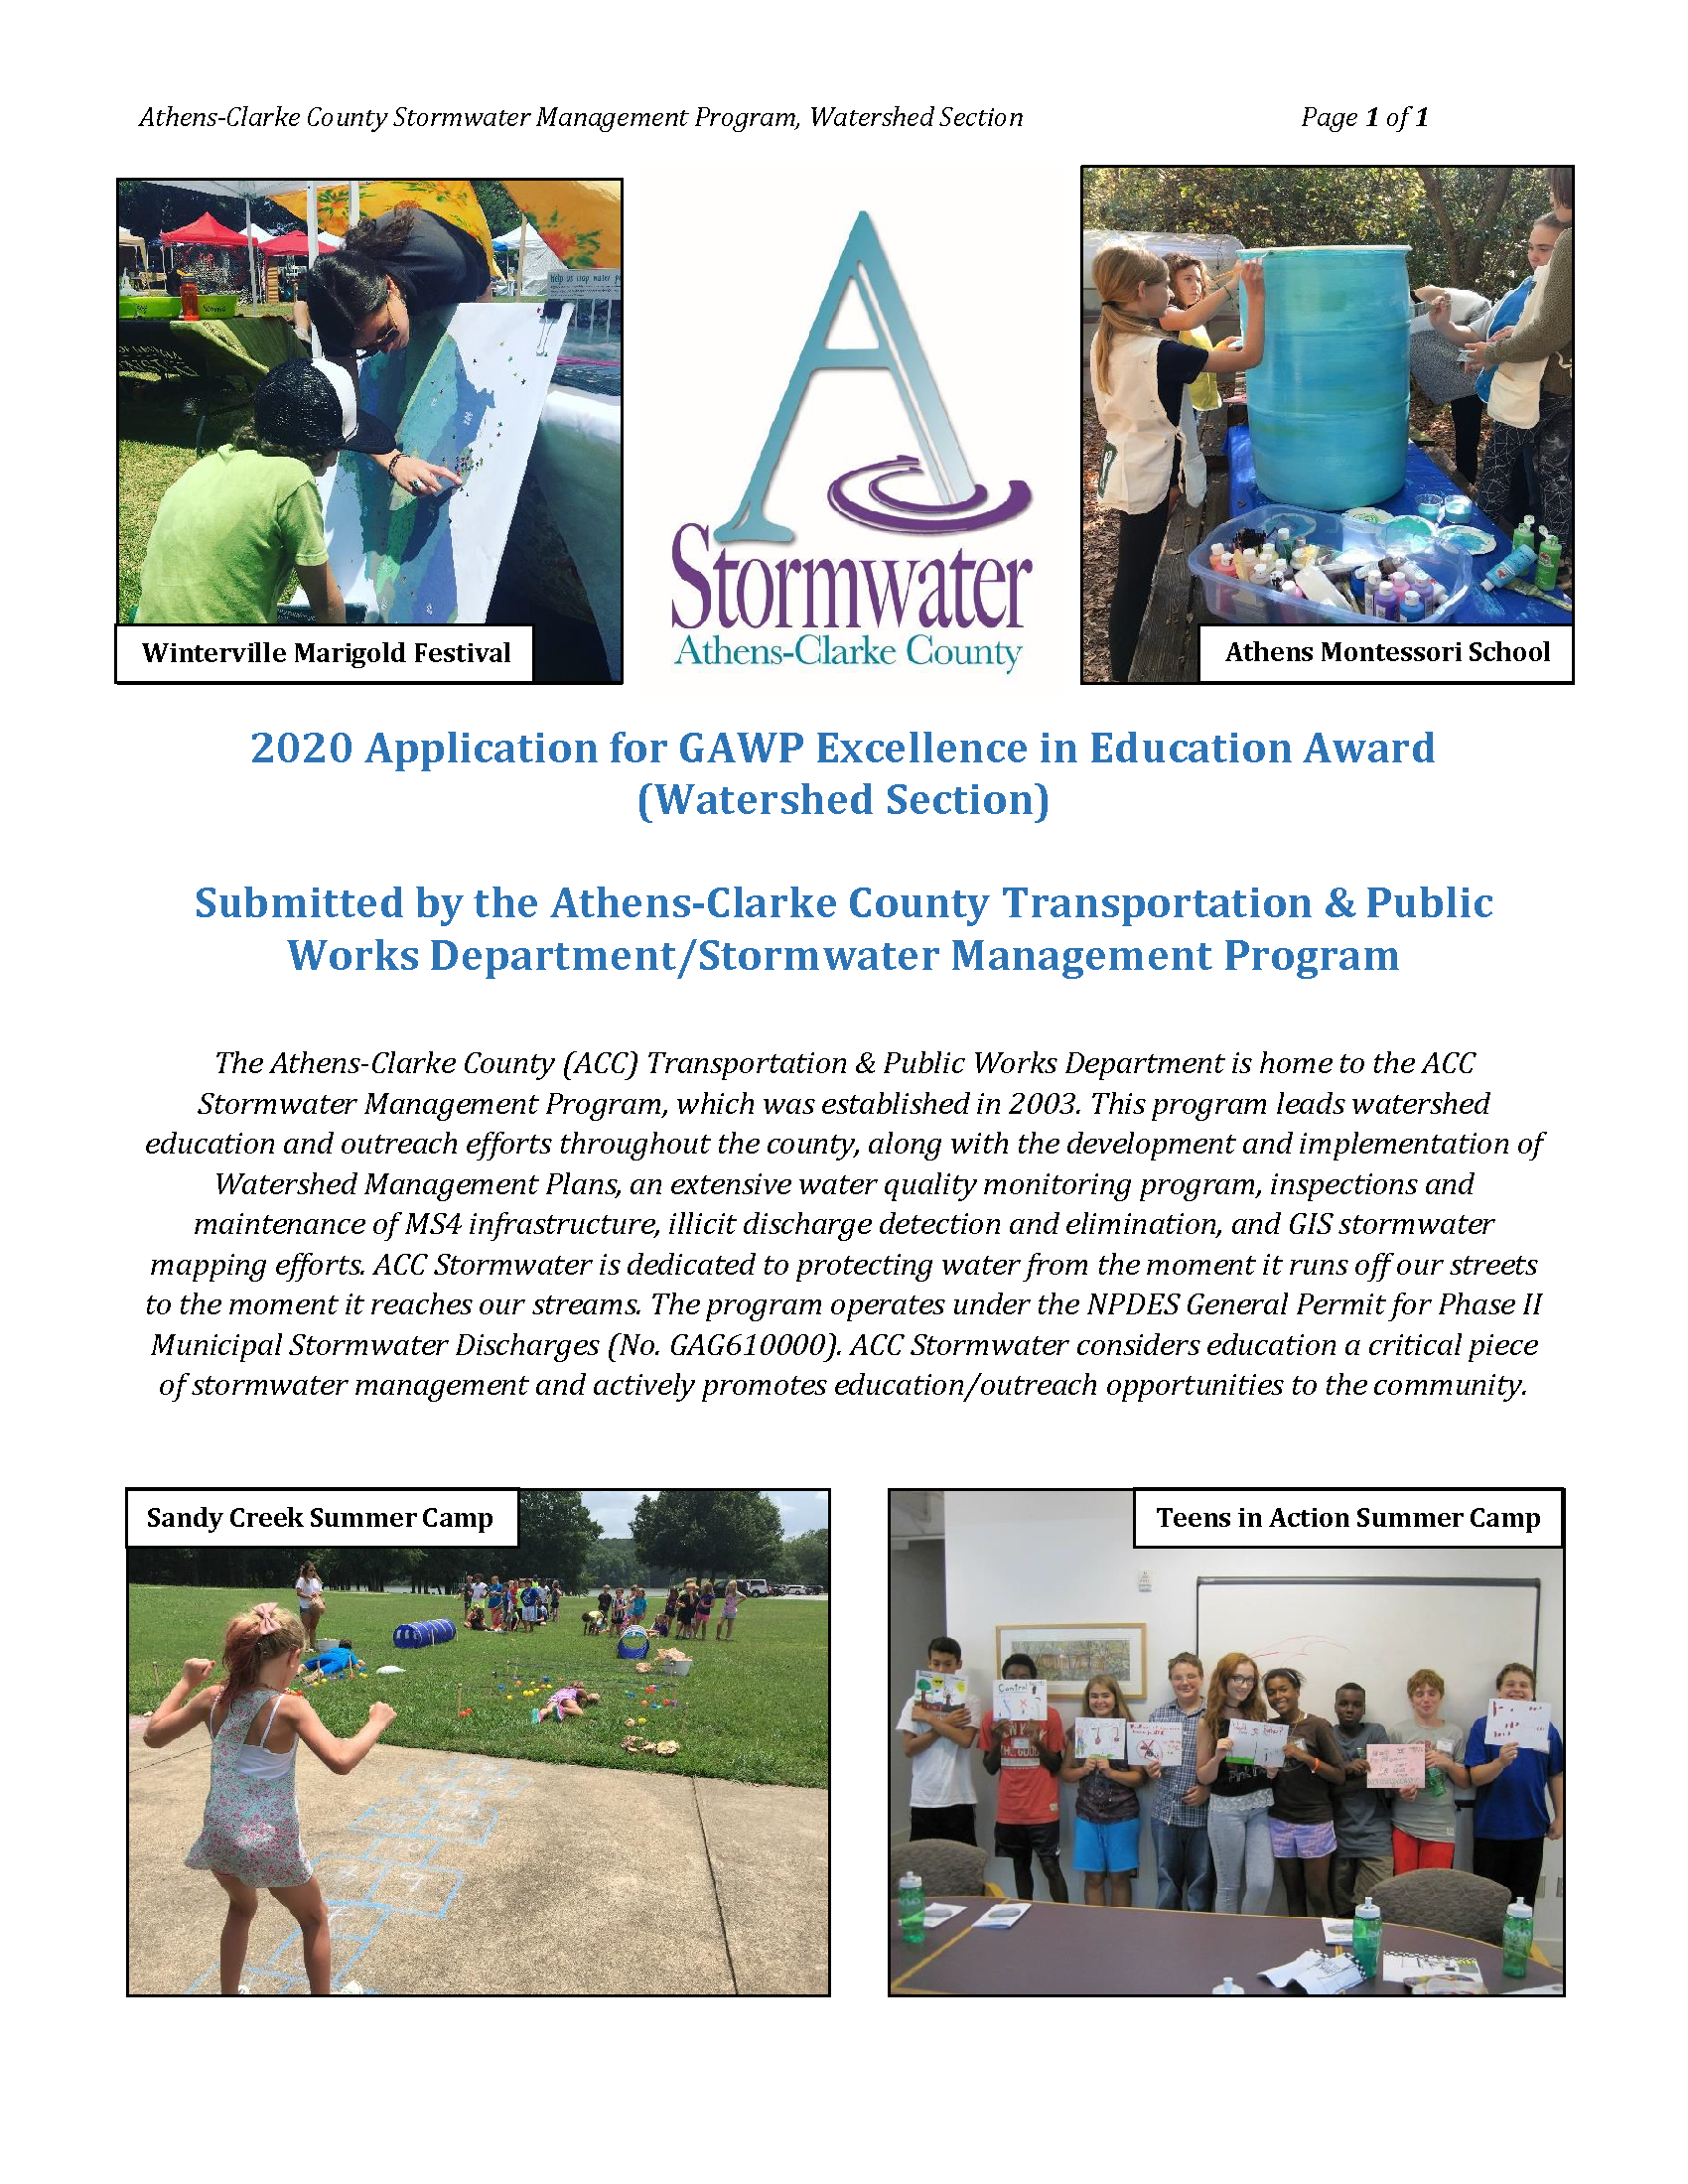 ACC Stormwater GAWP Award App Cover Page 2